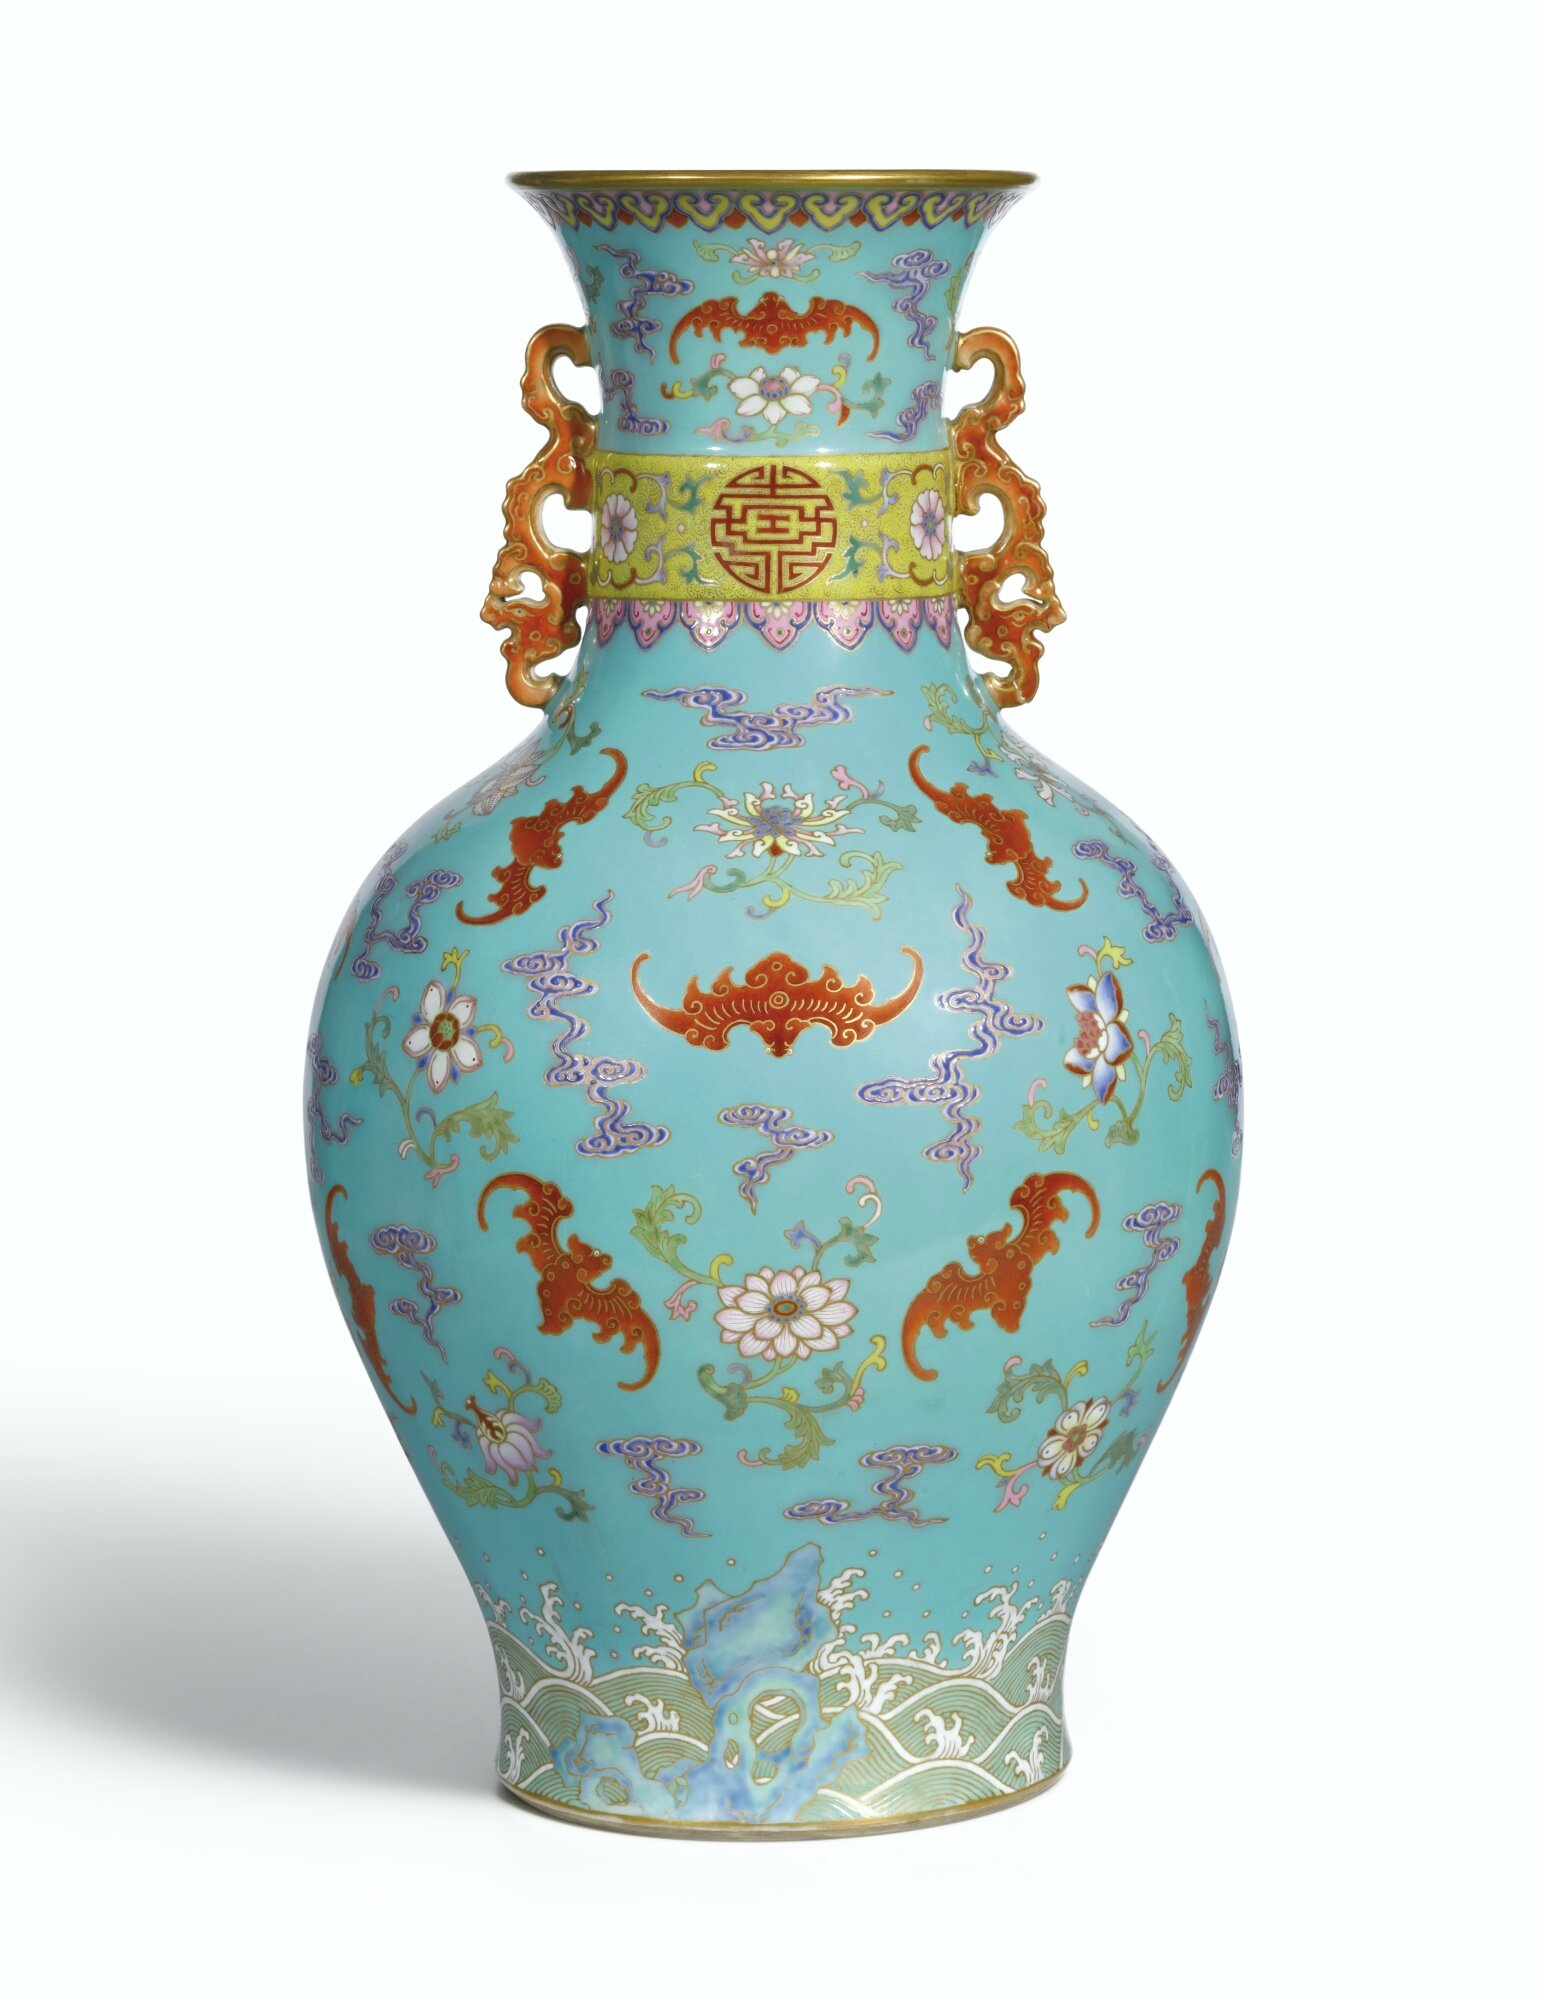 A magnificient turquoise ground famille rose vase seal mark and a magnificient turquoise ground famille rose vase seal mark and period of qianlong 4ce4e7cbfbcd212733d406957b4e1fea 11e77c2c6f85510d70e07d6831ca81ea reviewsmspy